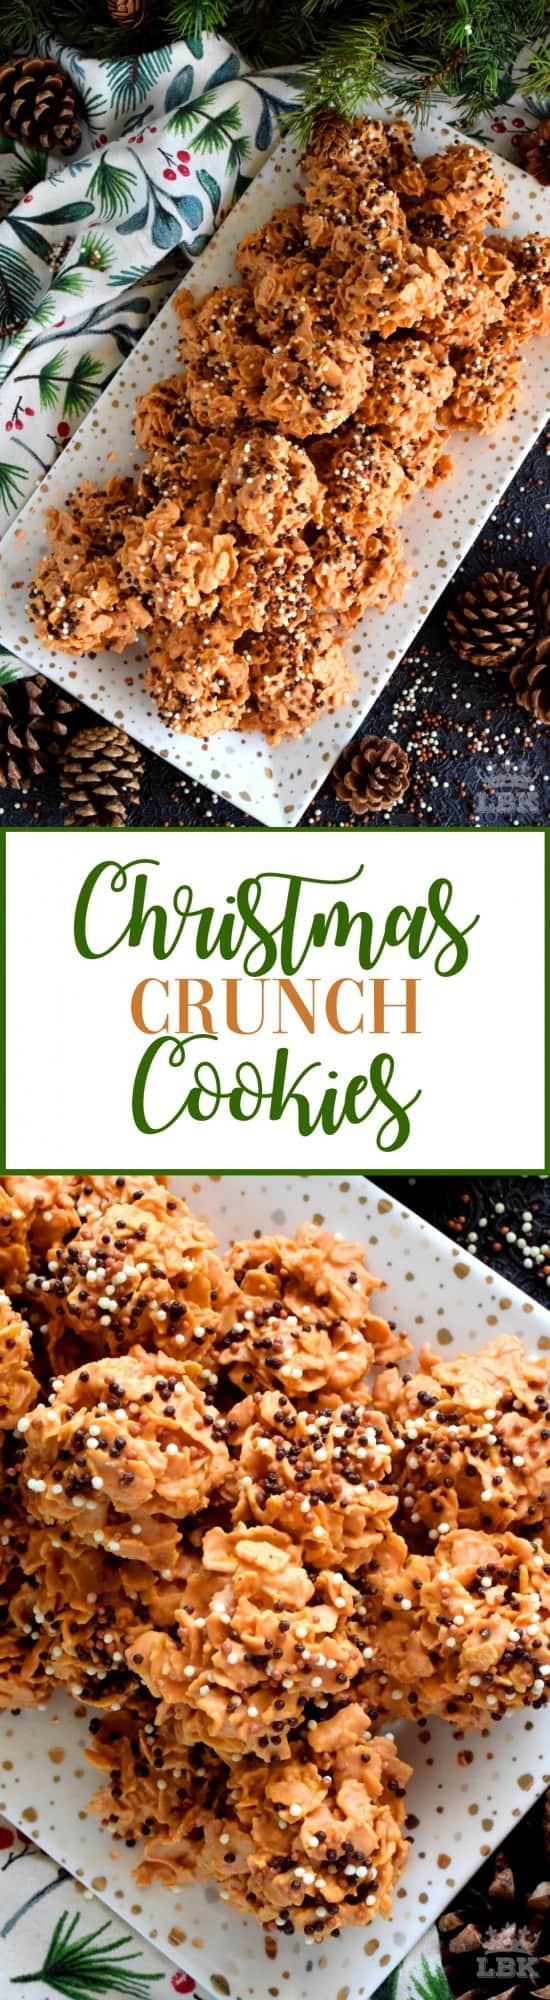 Christmas Crunch Cookies - So simple, so easy, and so delicious! Christmas Crunch Cookies are perfect for sharing and a great option for holiday cookie exchange parties! #christmas #holiday #cookies #treats #snacks #homemade